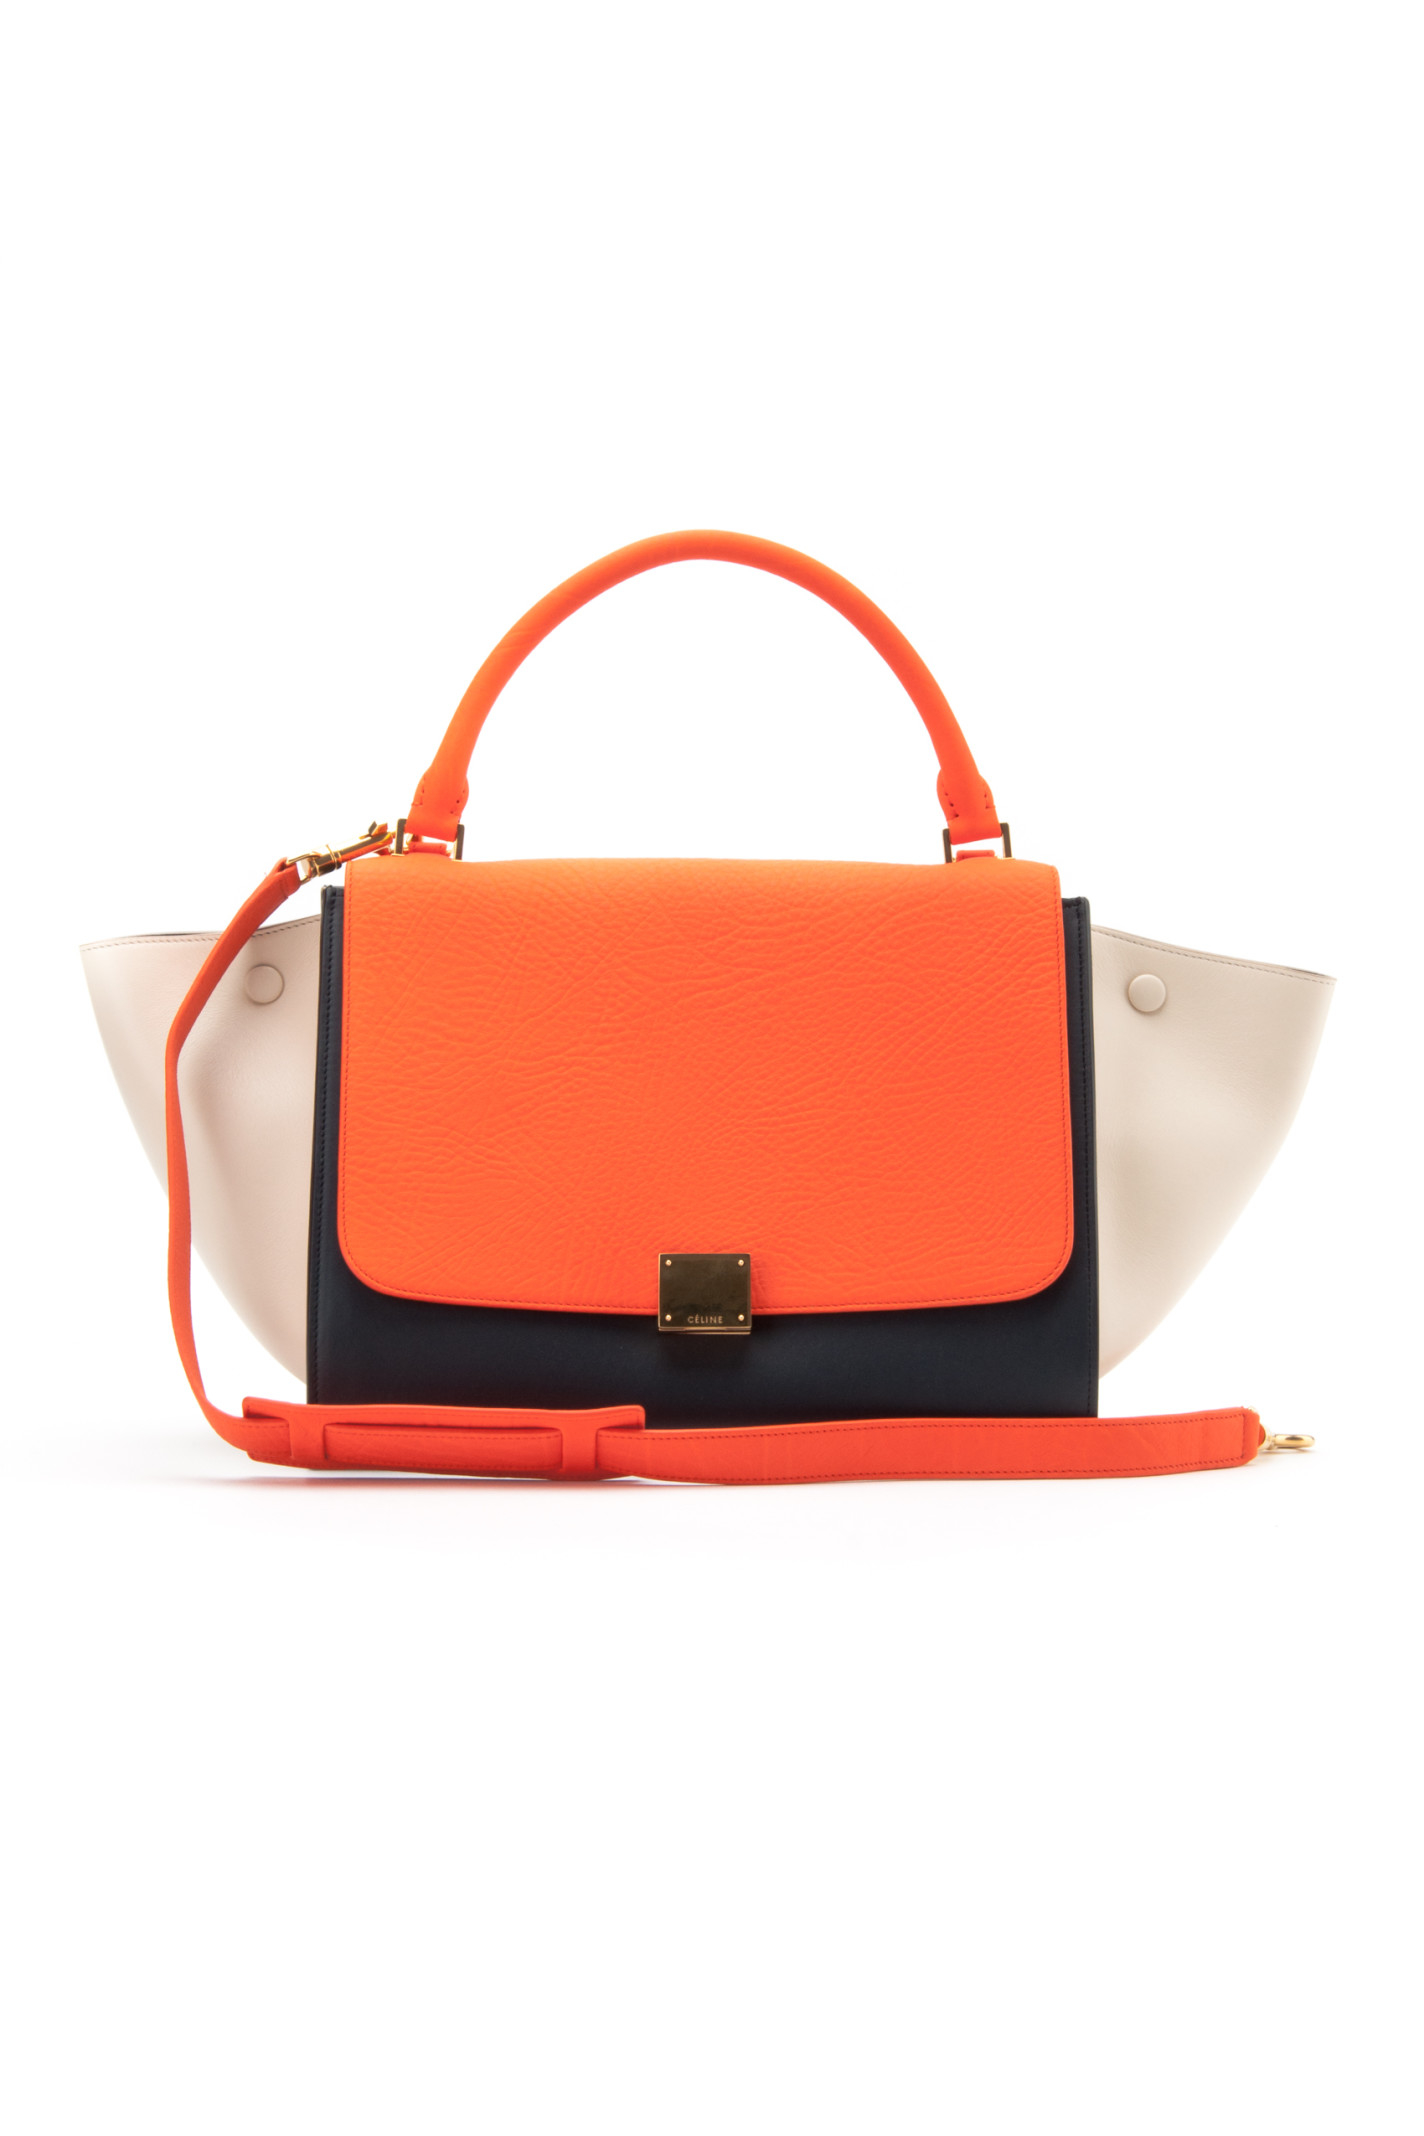 Celine Bags Online Ping Orange Leather Handbag Tze Luggage